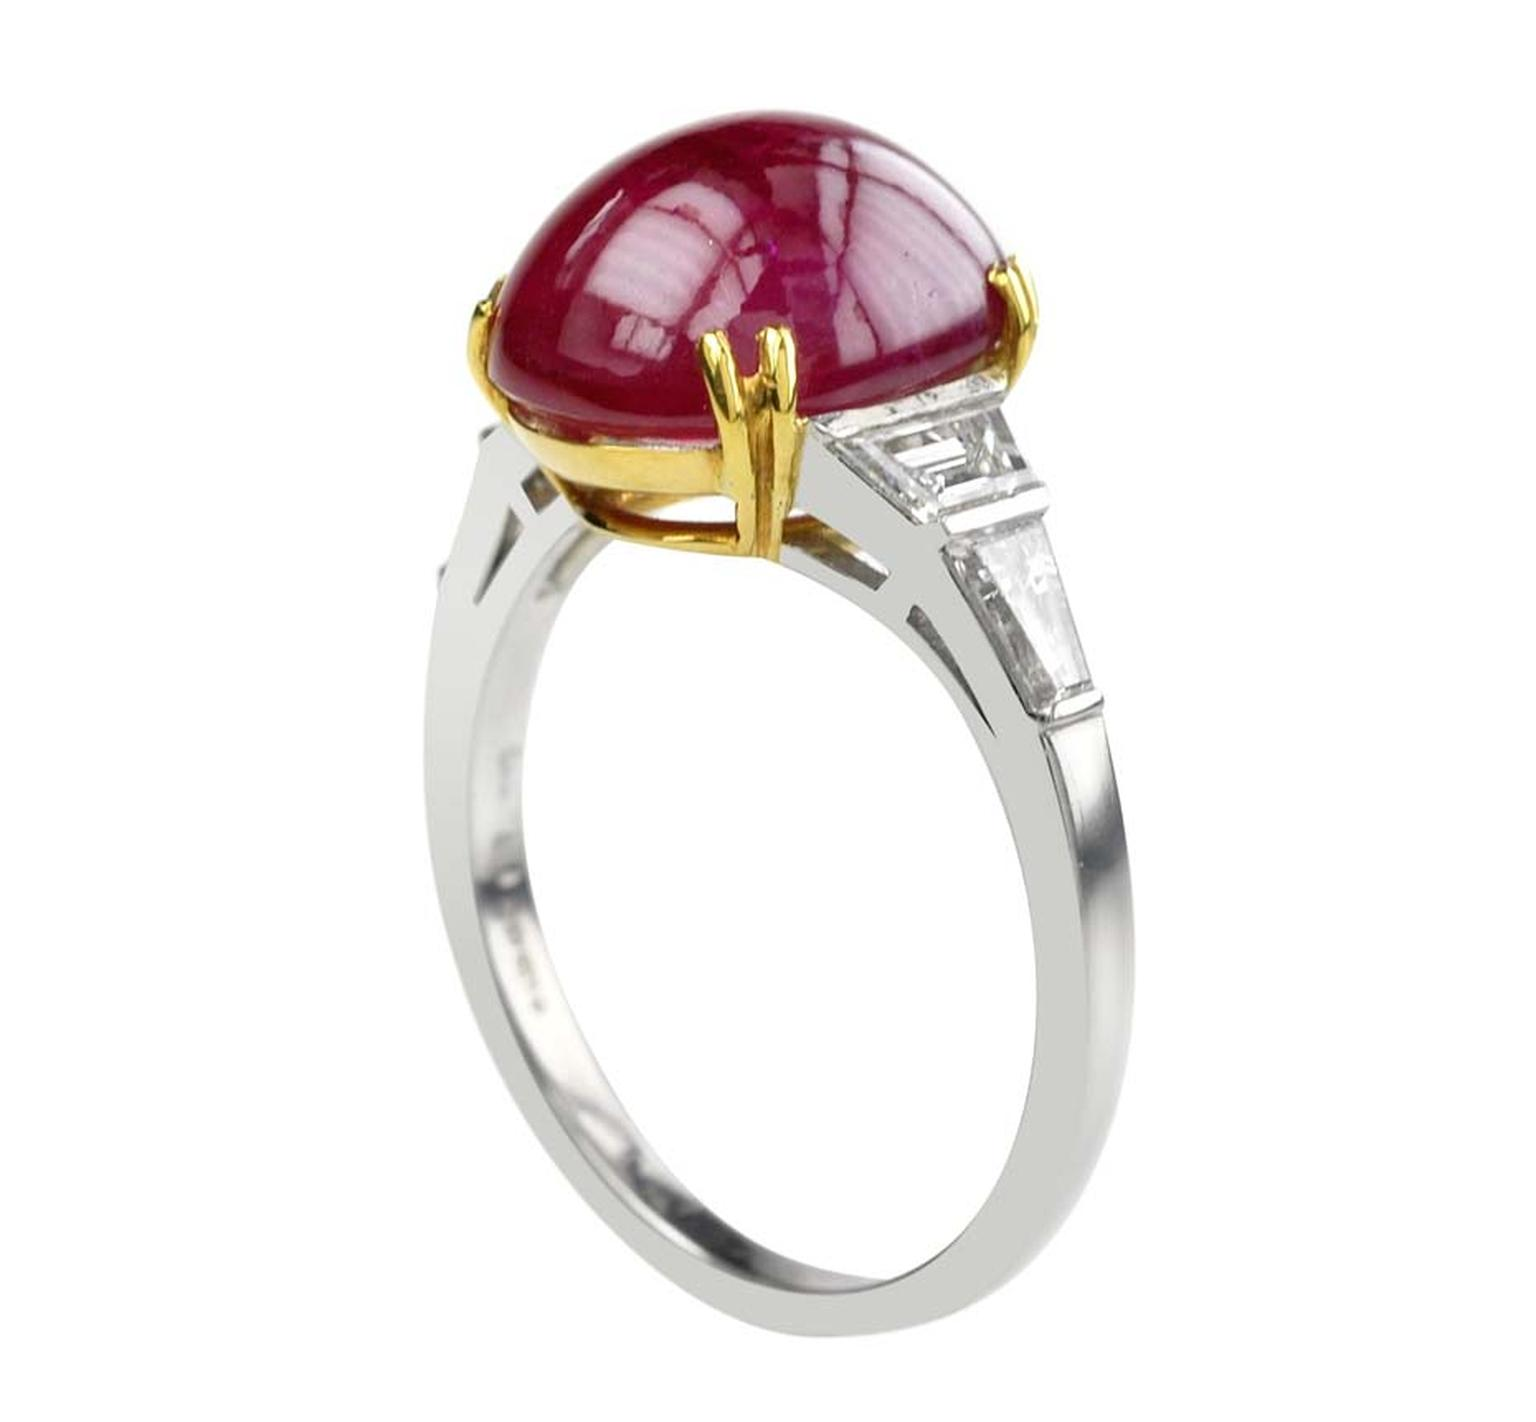 Lucie Campbell ruby engagement ring with a cabochon ruby set in yellow gold and a diamond band set in platinum and white gold.